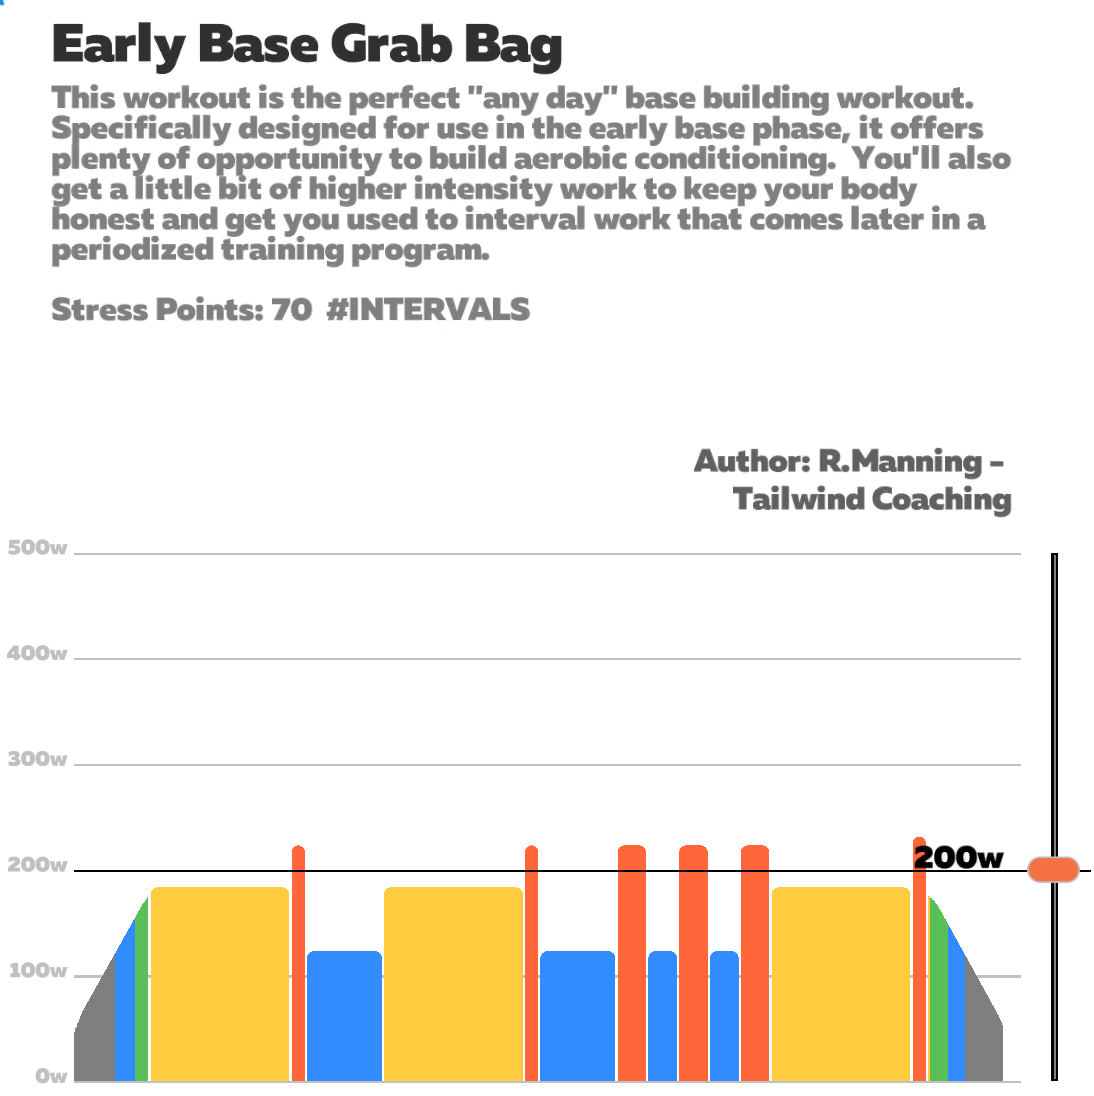 New Zwift Workout: The Early Base Grab Bag | Tailwind